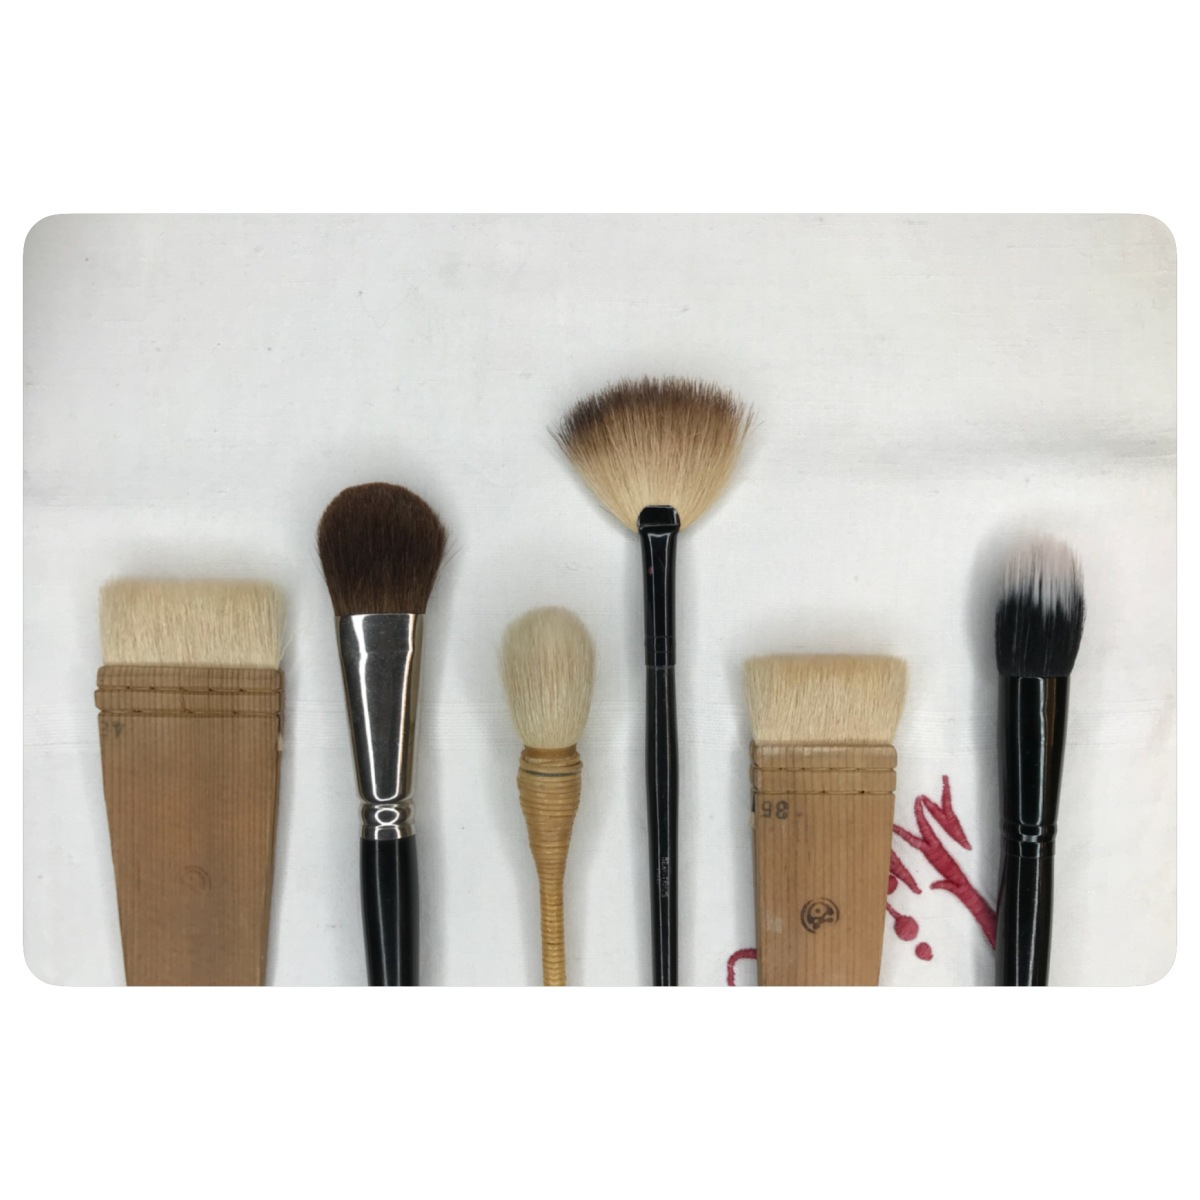 Favorite Brushes for Blush, Contour and Highlight Application